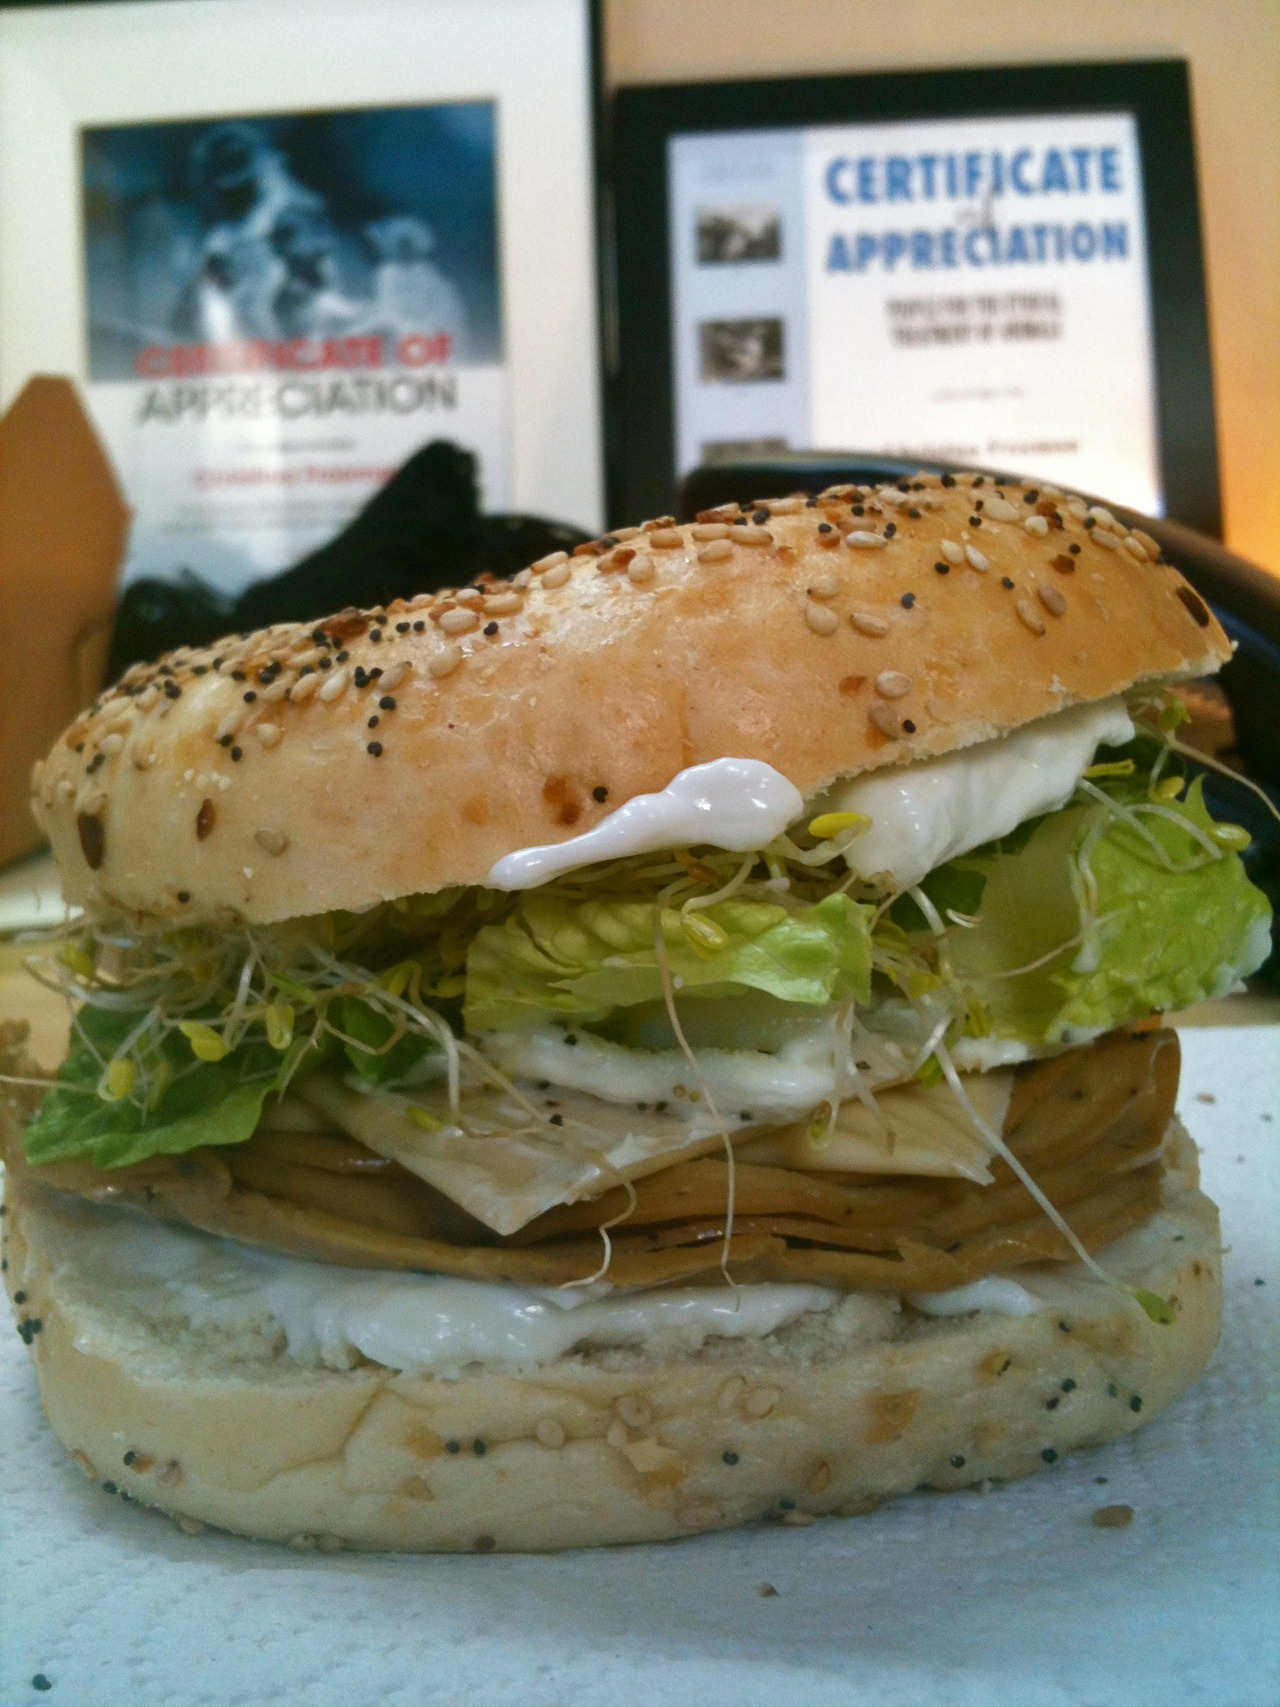 Bagel sandwich! Tofurky slices, Vegenaise, vegan cheese slices, sprouts, & lettuce!